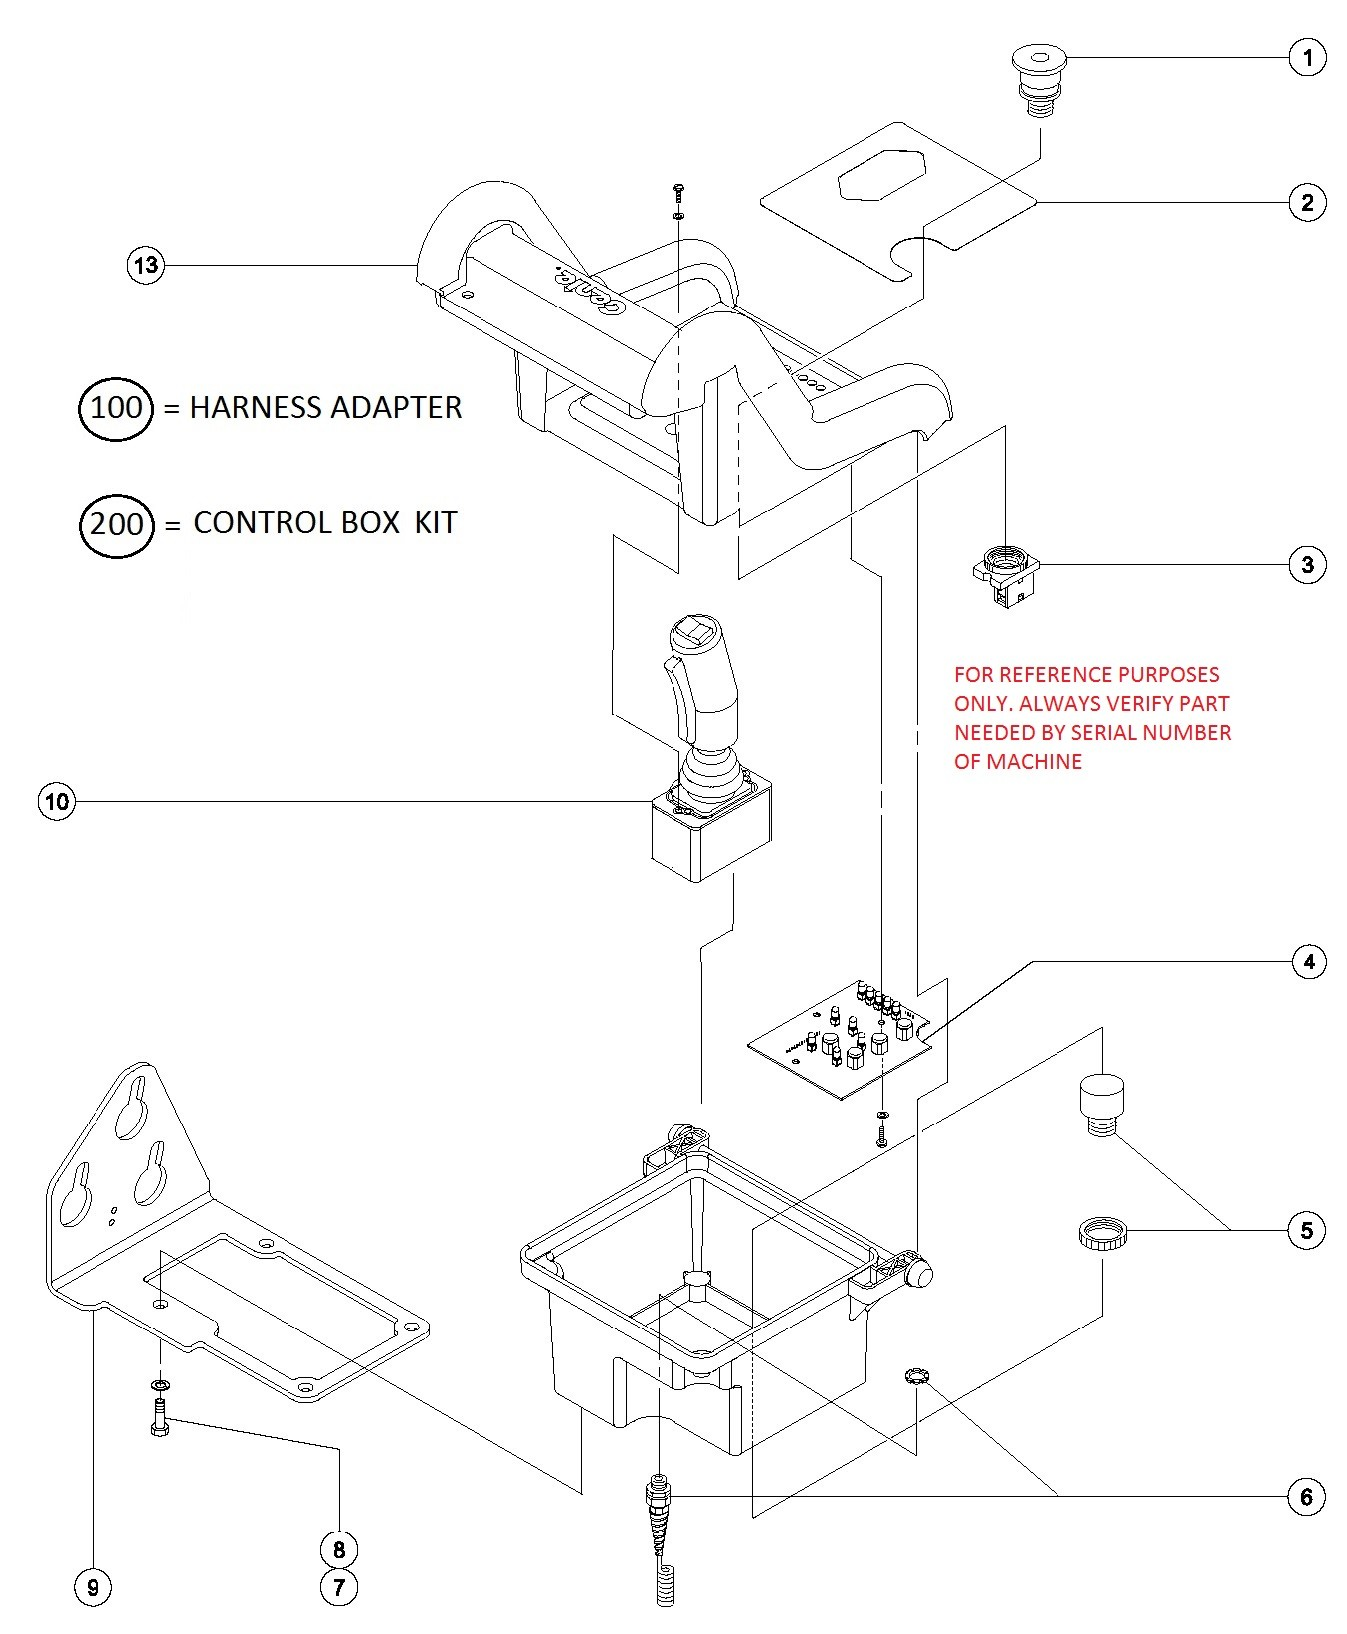 Mlt 1 Wiring Diagram Just Another Blog For You Rh 12 3 Carrera Rennwelt De Basic Electrical